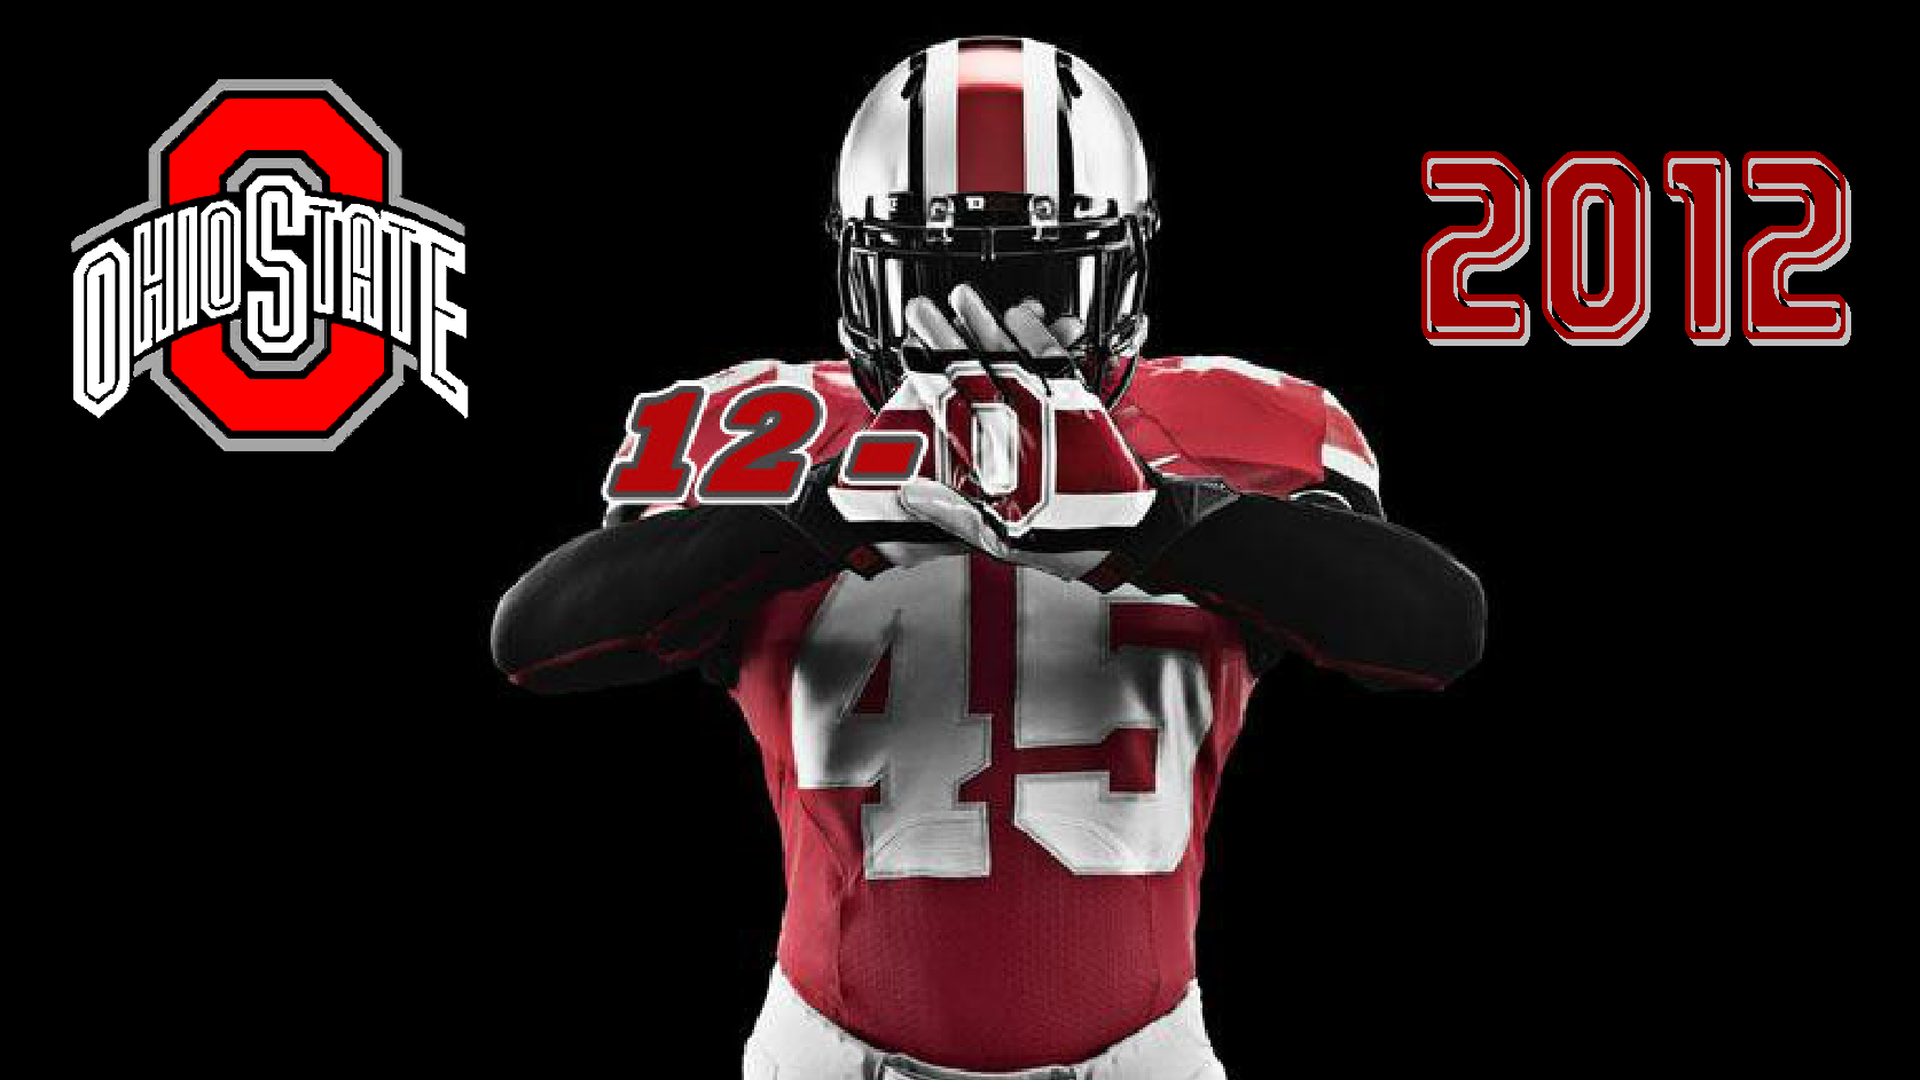 OHIO STATE 12 0 2012   Ohio State Football Wallpaper 1920x1080